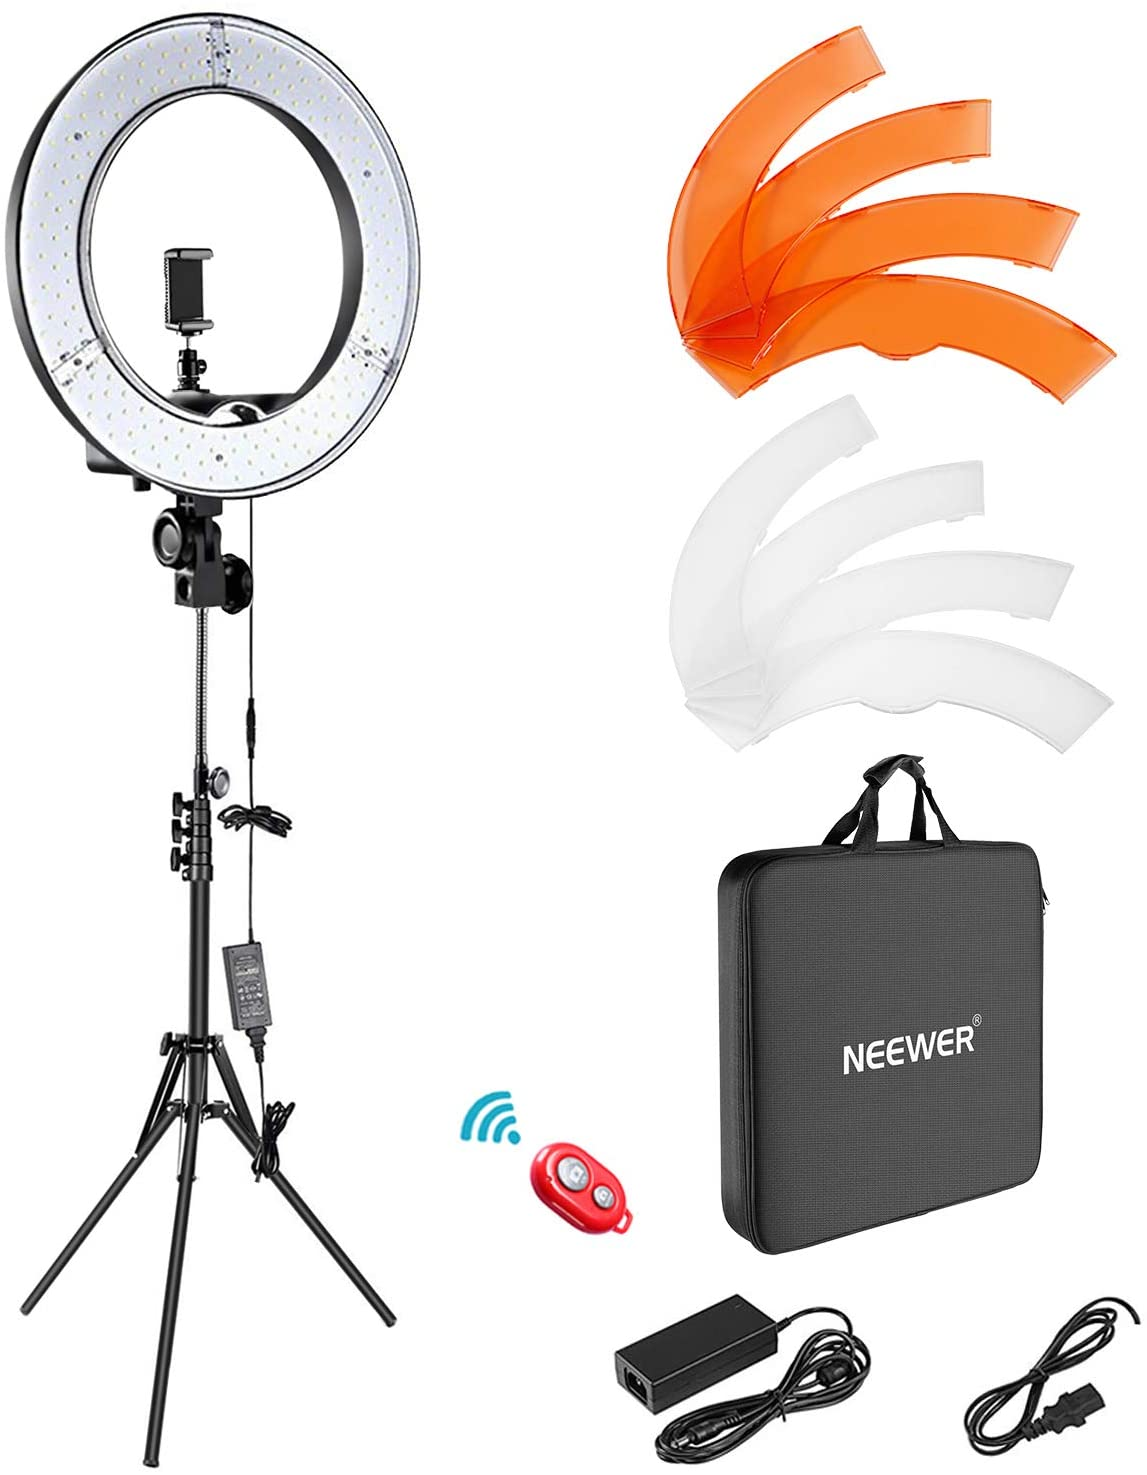 Kit de luces de anillo Neewer: 18.9 in, exterior 55 W, 5500 K, luz de anillo LED regulable, soporte de luz, bolsa de transporte para cámara, smartphone, YouTube, disparo de autorretrato